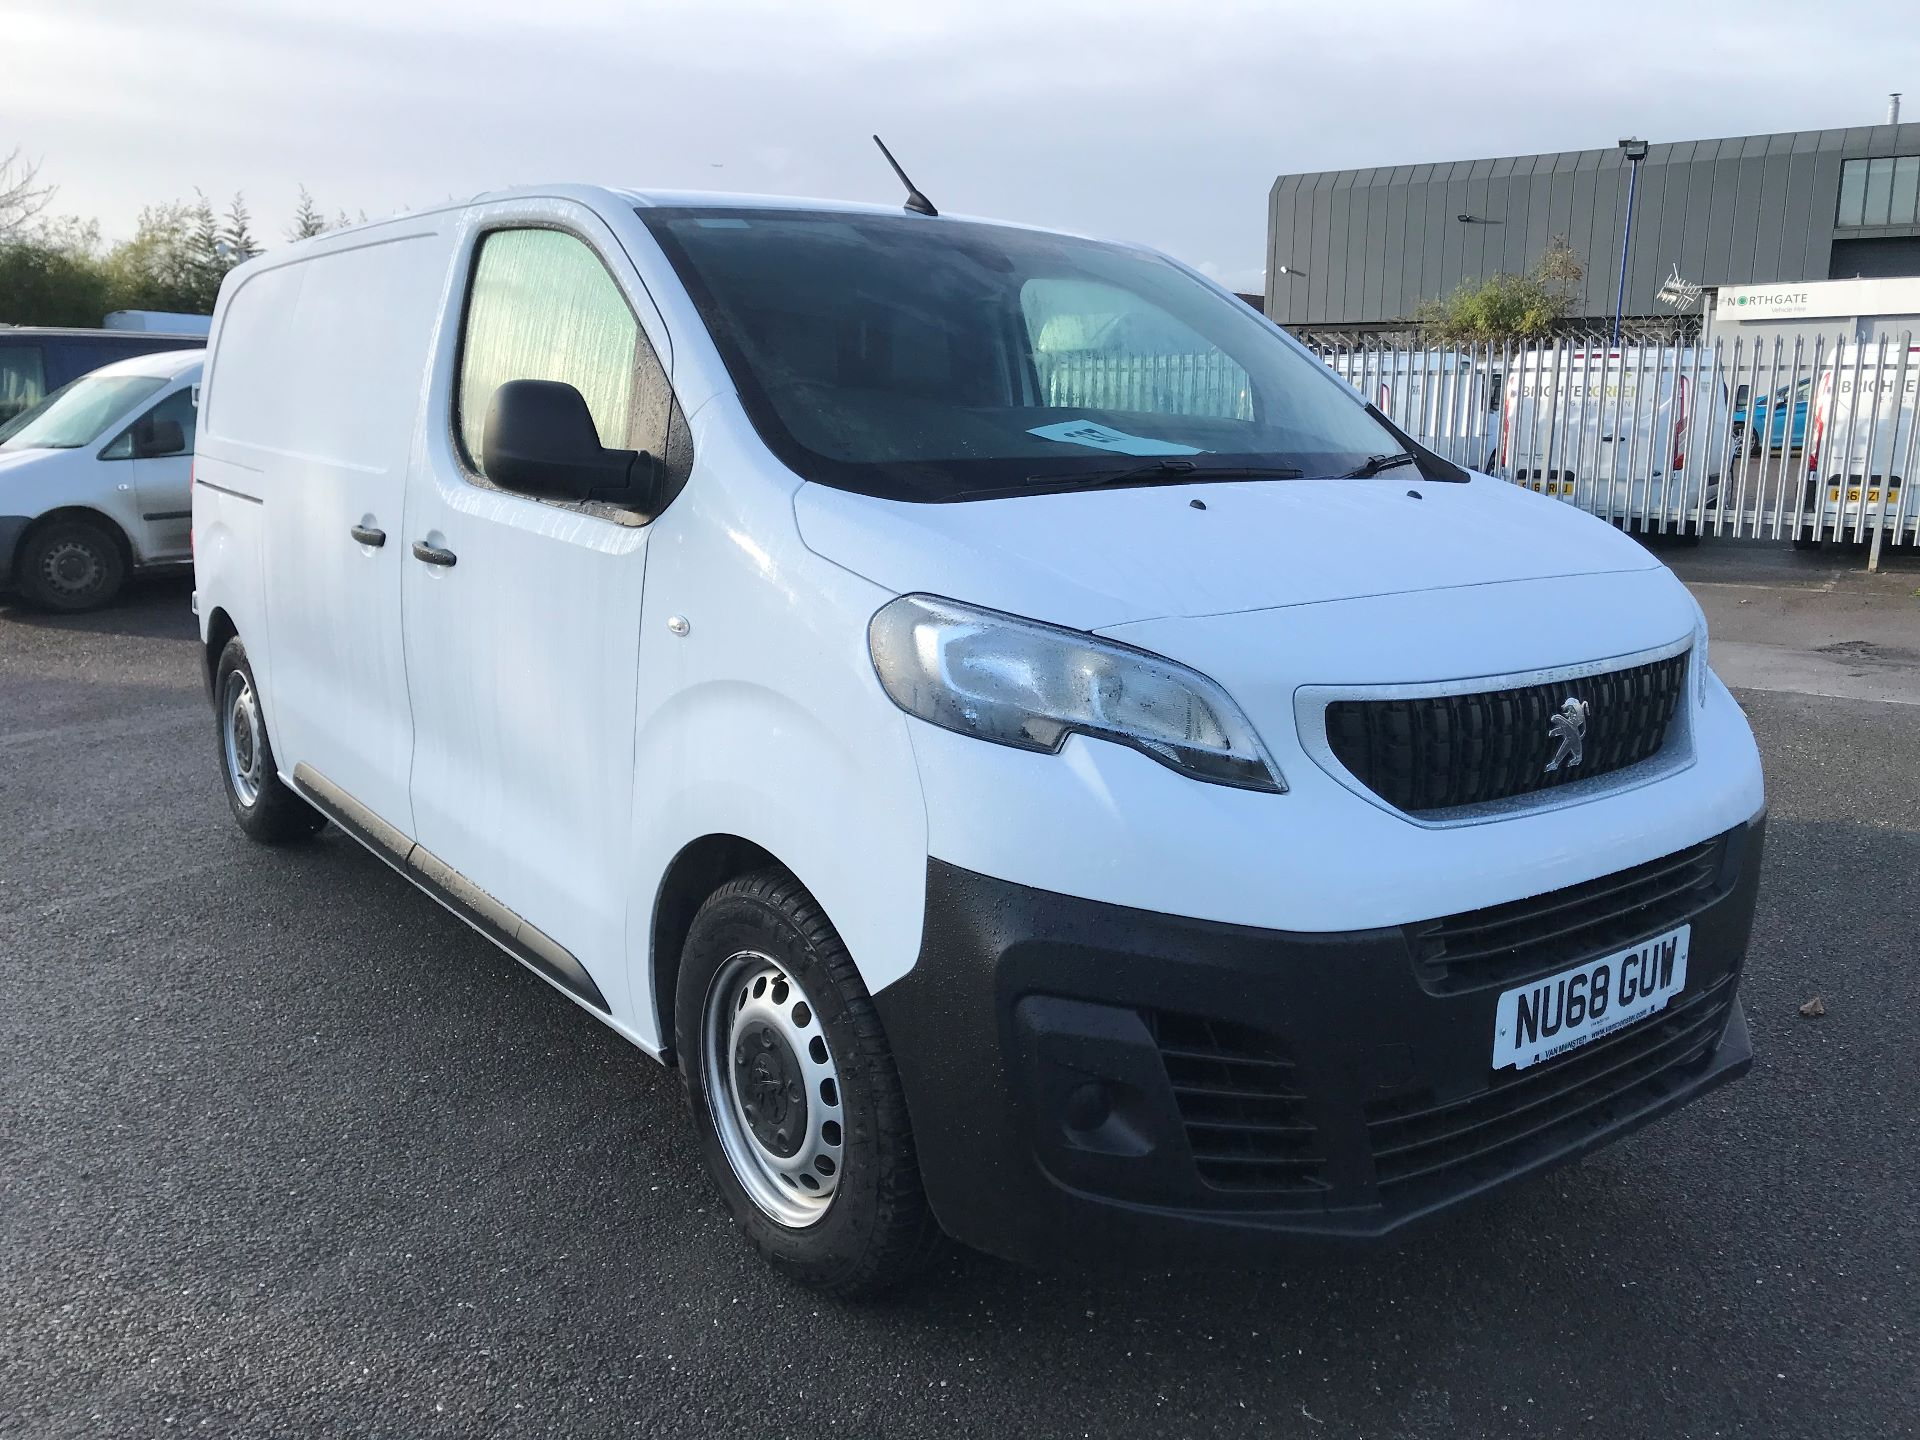 2018 Peugeot Expert  STANDARD 1000 1.6 BLUEHDI 95 PROFFESSIONAL EURO 6 (NU68GUW)